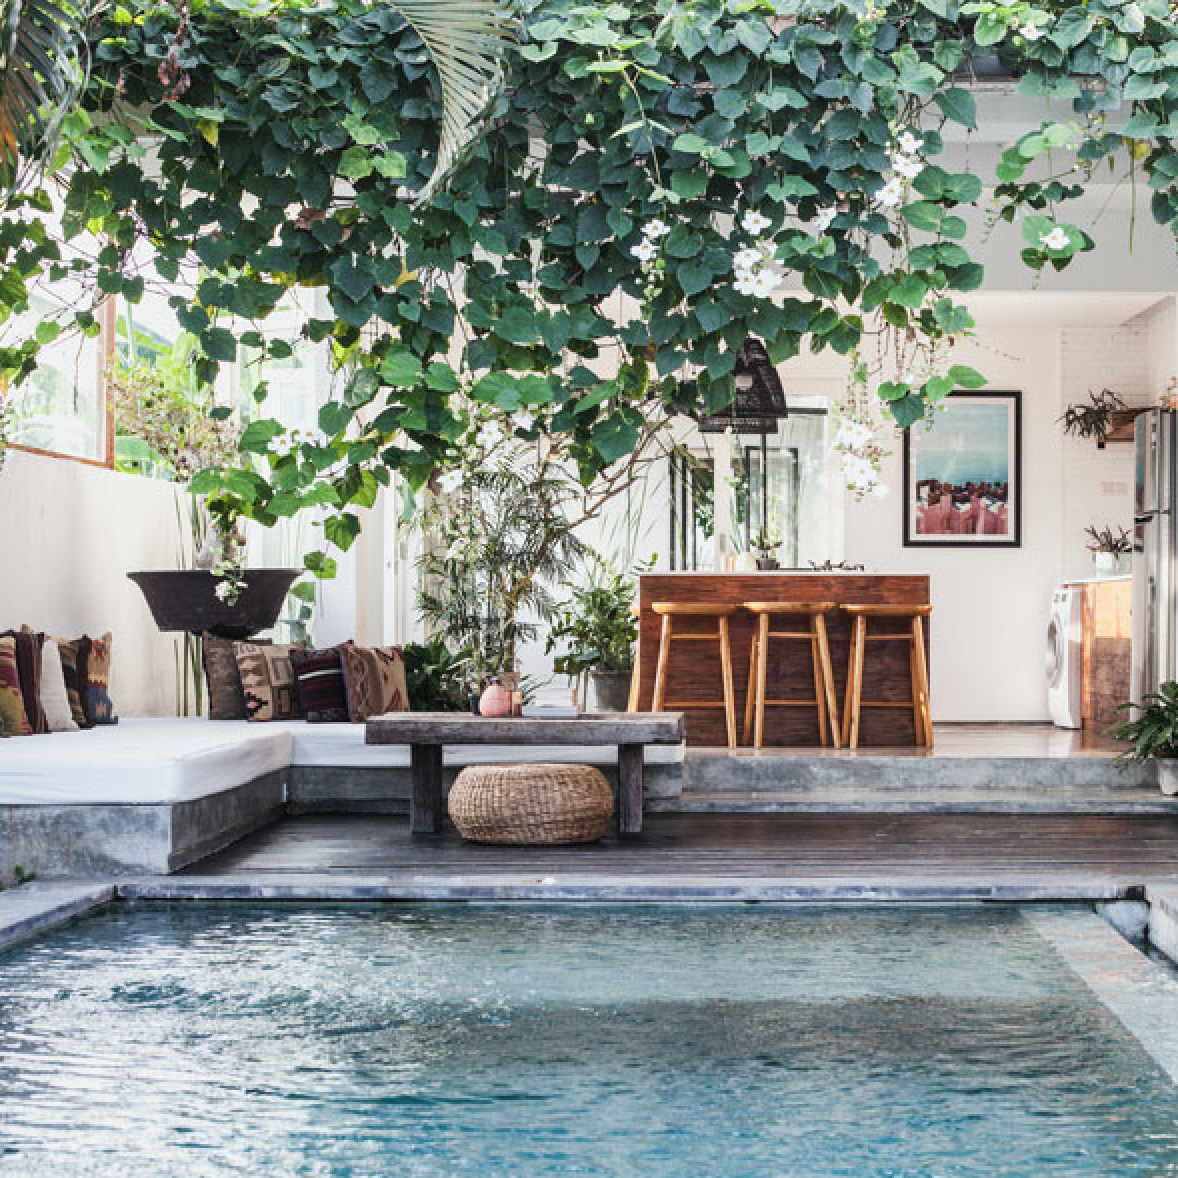 FELLA VILLAS, CANGGU, 3 bedrooms, $280 – $300 per night